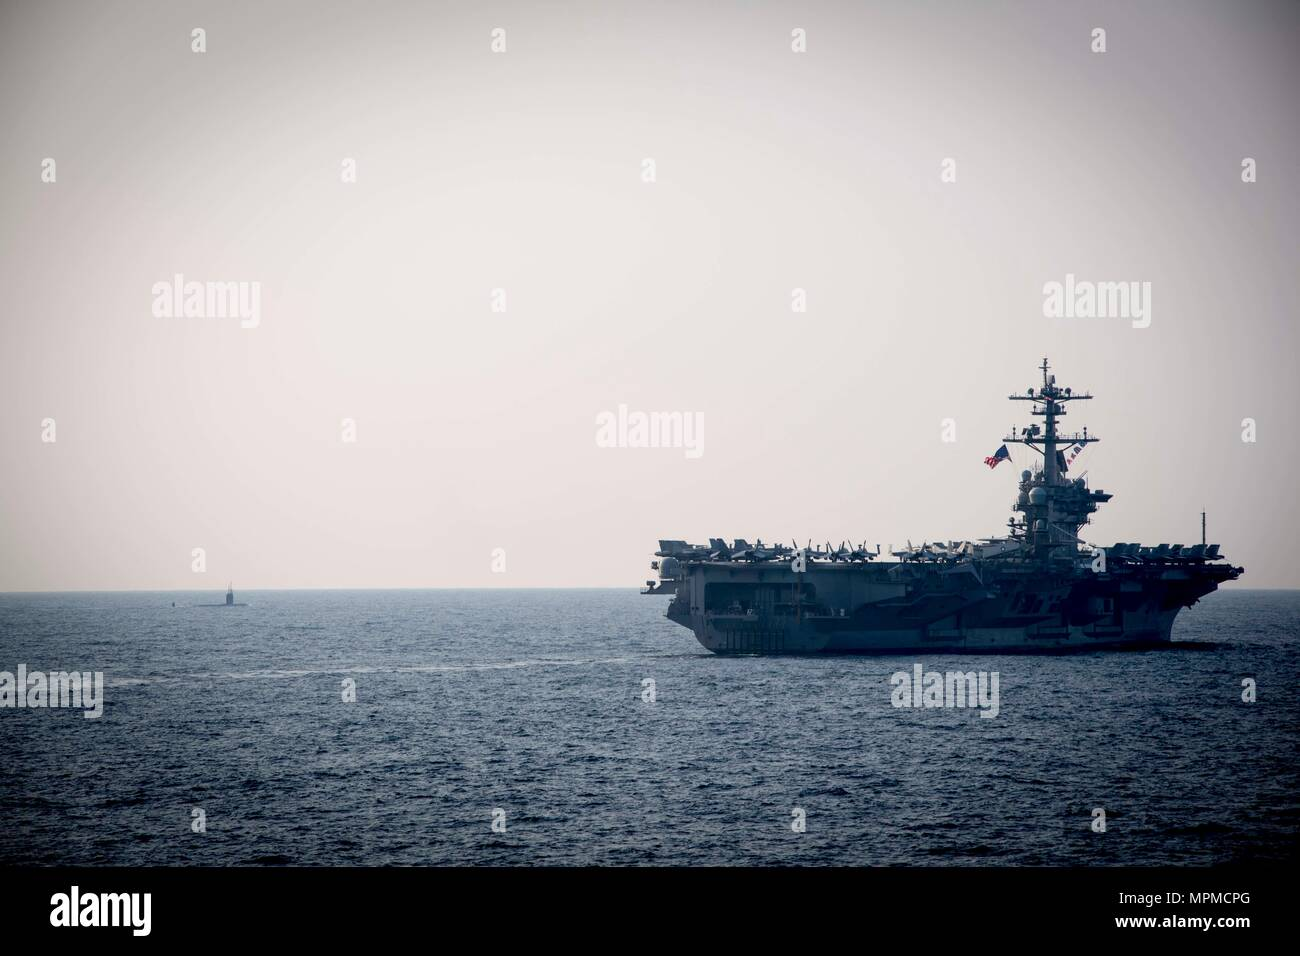 WATERS EAST OF THE KOREAN PENINSULA (March 22, 2017) The Nimitz-class aircraft carrier USS Carl Vinson (CVN 70) and blanksubmarine steam ahead of the Arleigh Burke-class guided-missile destroyer USS Stethem (DDG 63) during a surface maenuvers exercise with several other U.S. and Republic of Korea Navy ships and submarines during Foal Eagle (FE) 17. FE 17 is a series of annual training events designed to increase readiness to defend the ROK, protect the region, and maintain stability in the Korean Peninsula. (U.S. Navy photo by Mass Communication Specialist 2nd Class Ryan Harper/ Released) - Stock Image